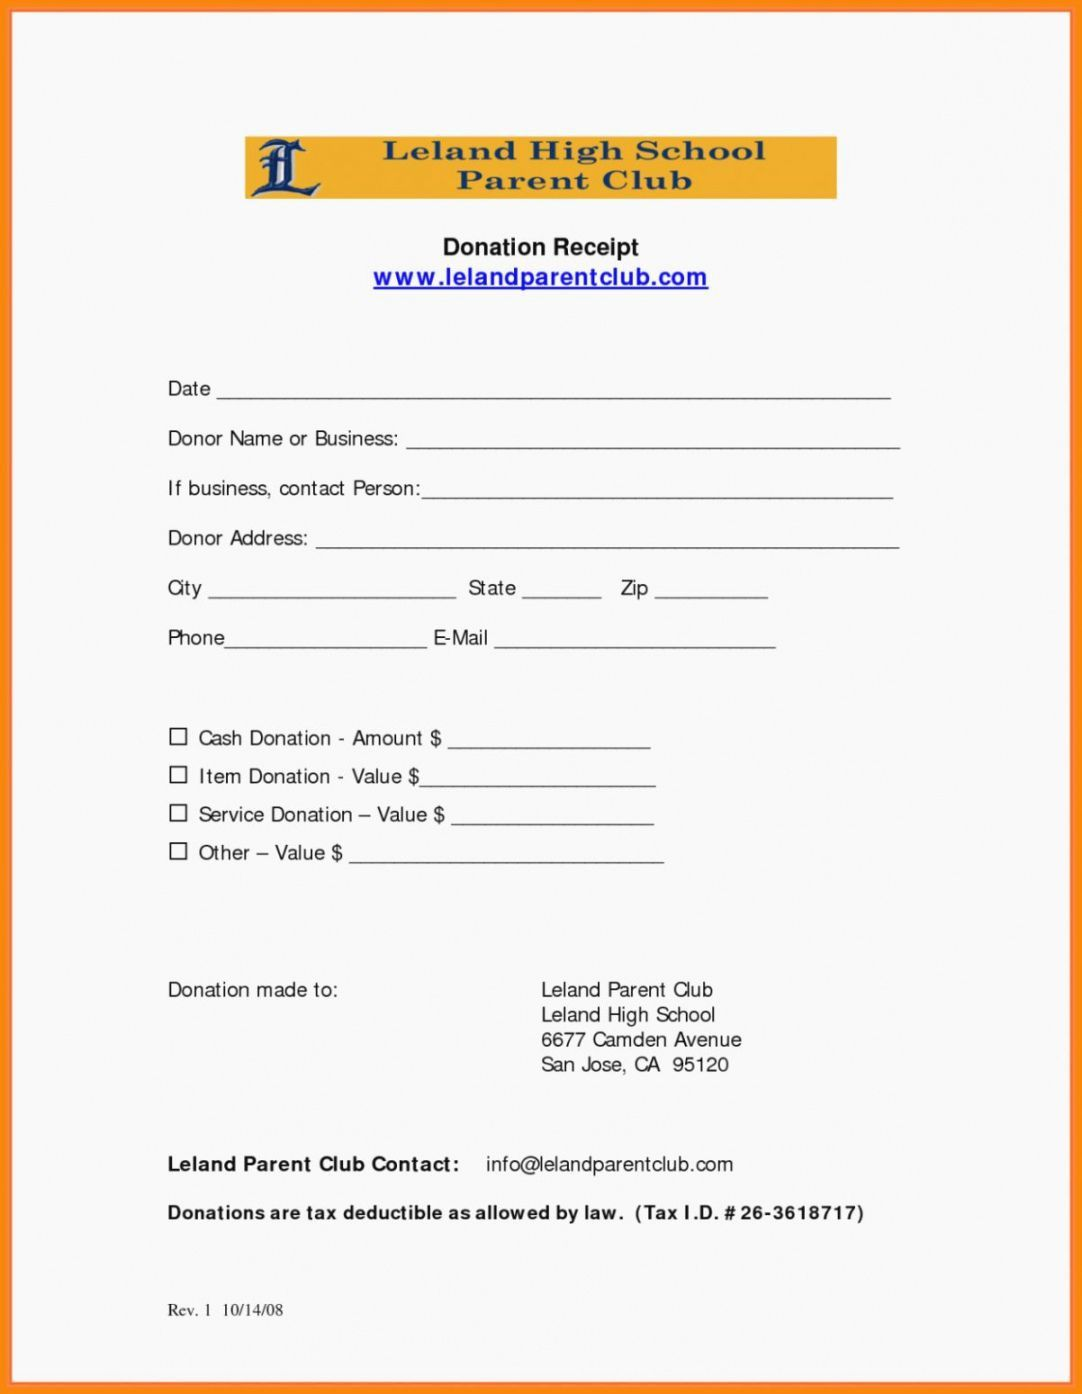 002 Staggering Tax Deductible Donation Receipt Template Australia Picture Full